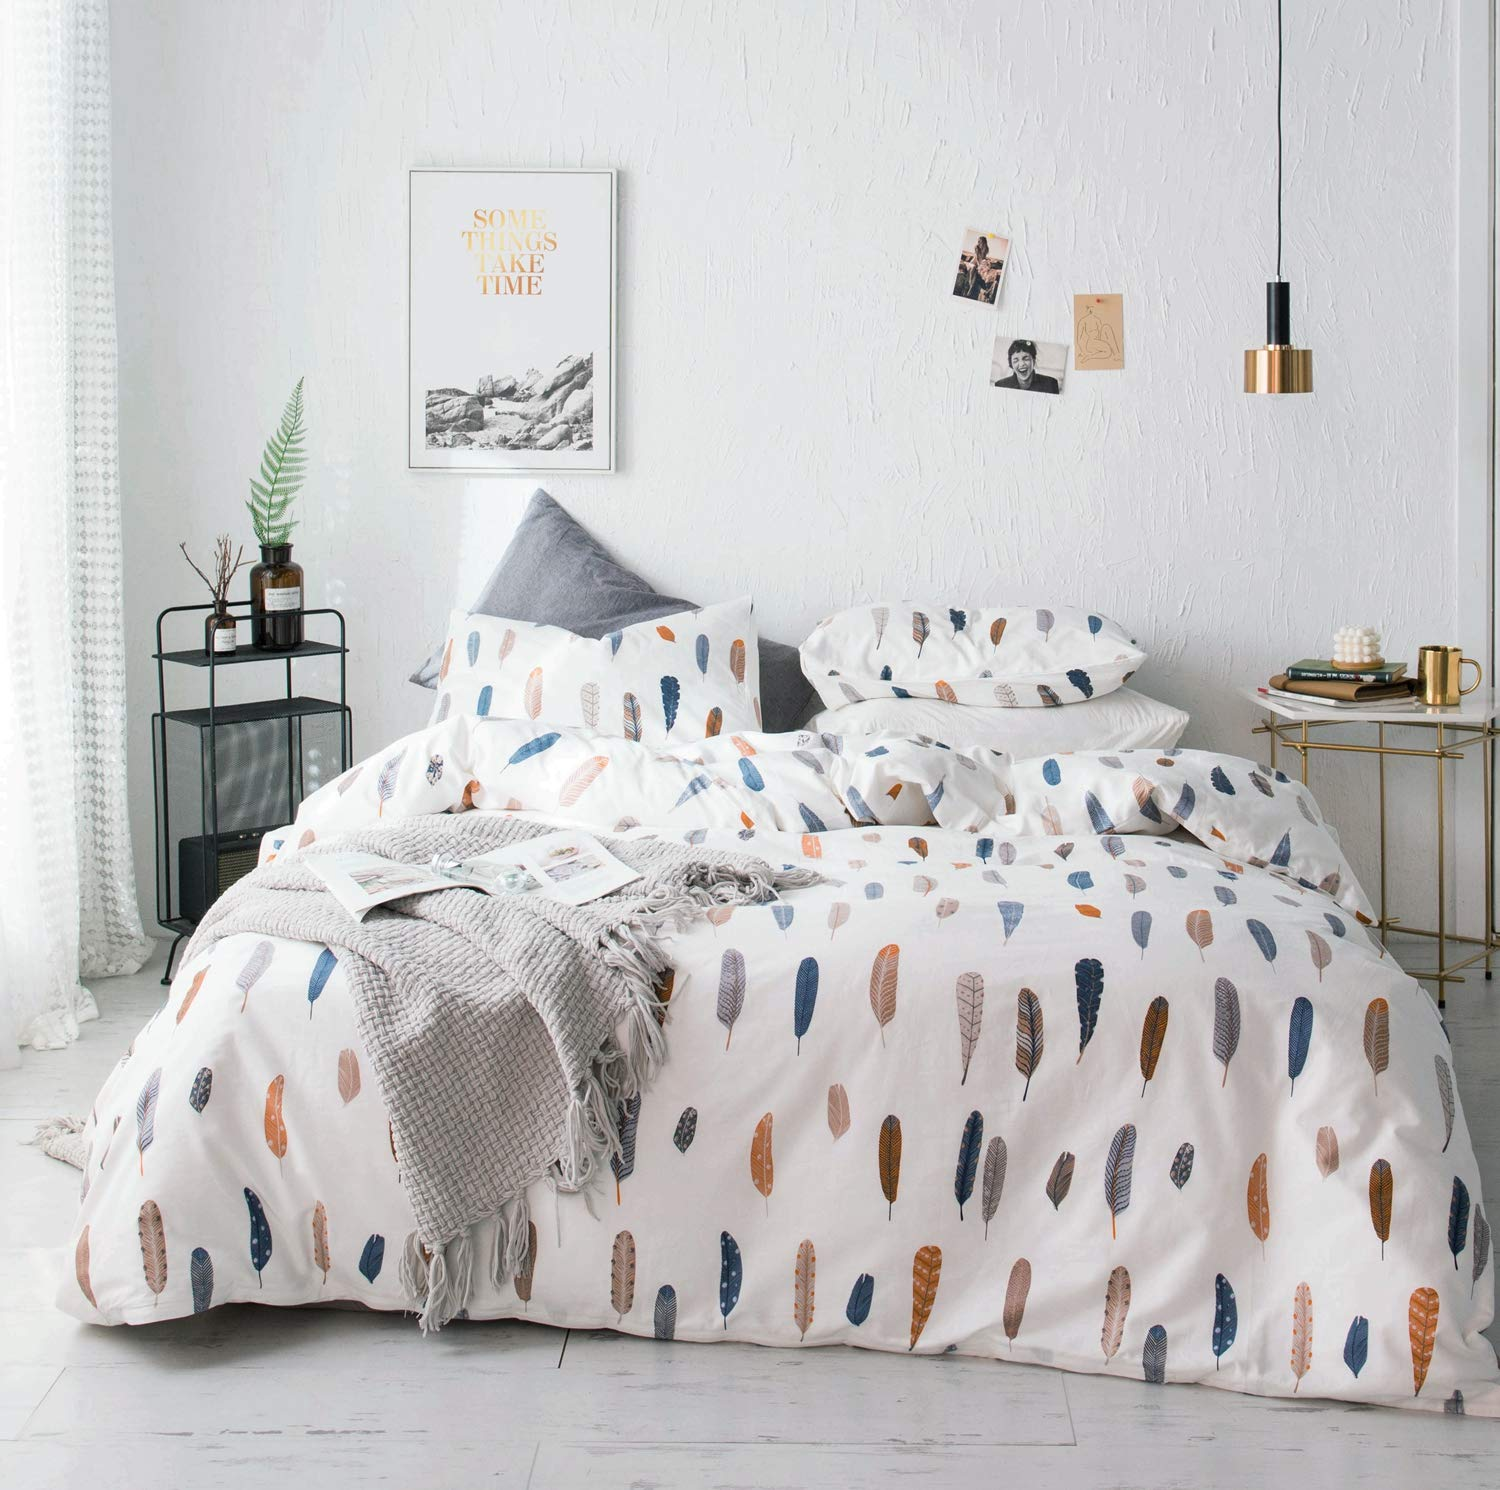 YuHeGuoJi 3 Pieces Duvet Cover Set 100% Cotton White King Size Multi-Colored Feather Print Bedding Set 1 Duvet Cover with Zipper Ties 2 Pillowcases Luxury Quality Soft Breathable Comfortable Durable